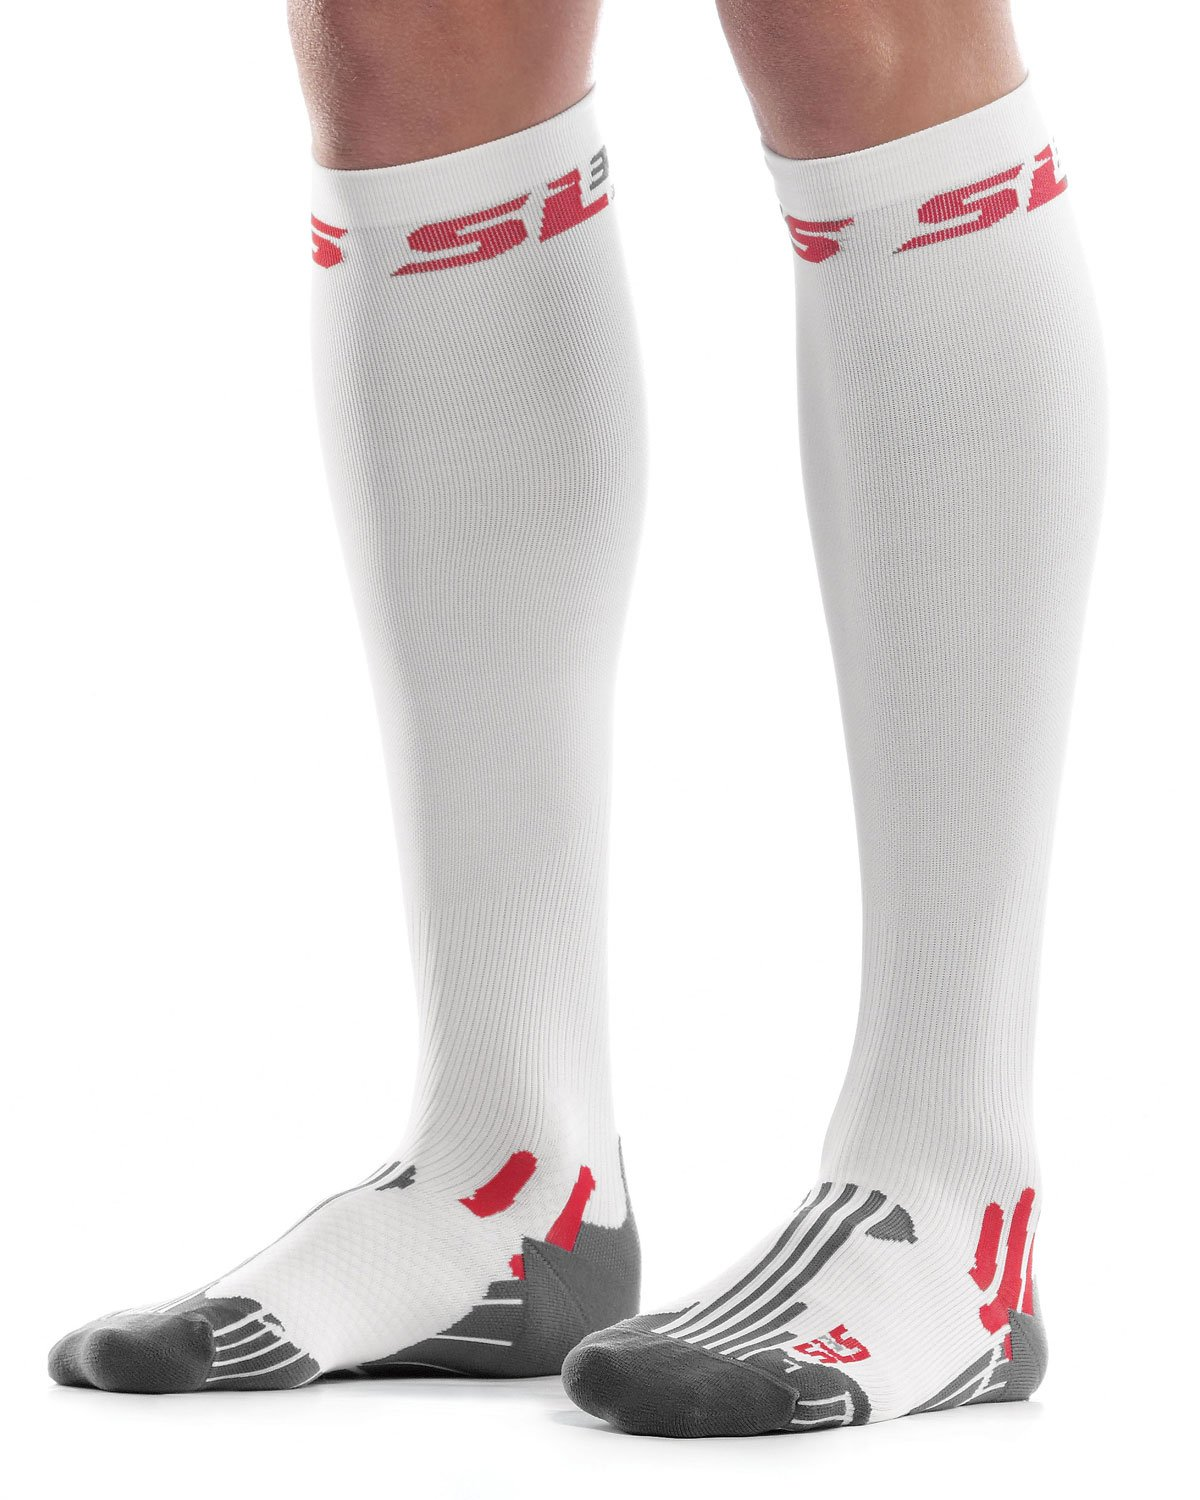 SLS3 FXC Compression Socks, White S/M by SLS3 (Image #1)